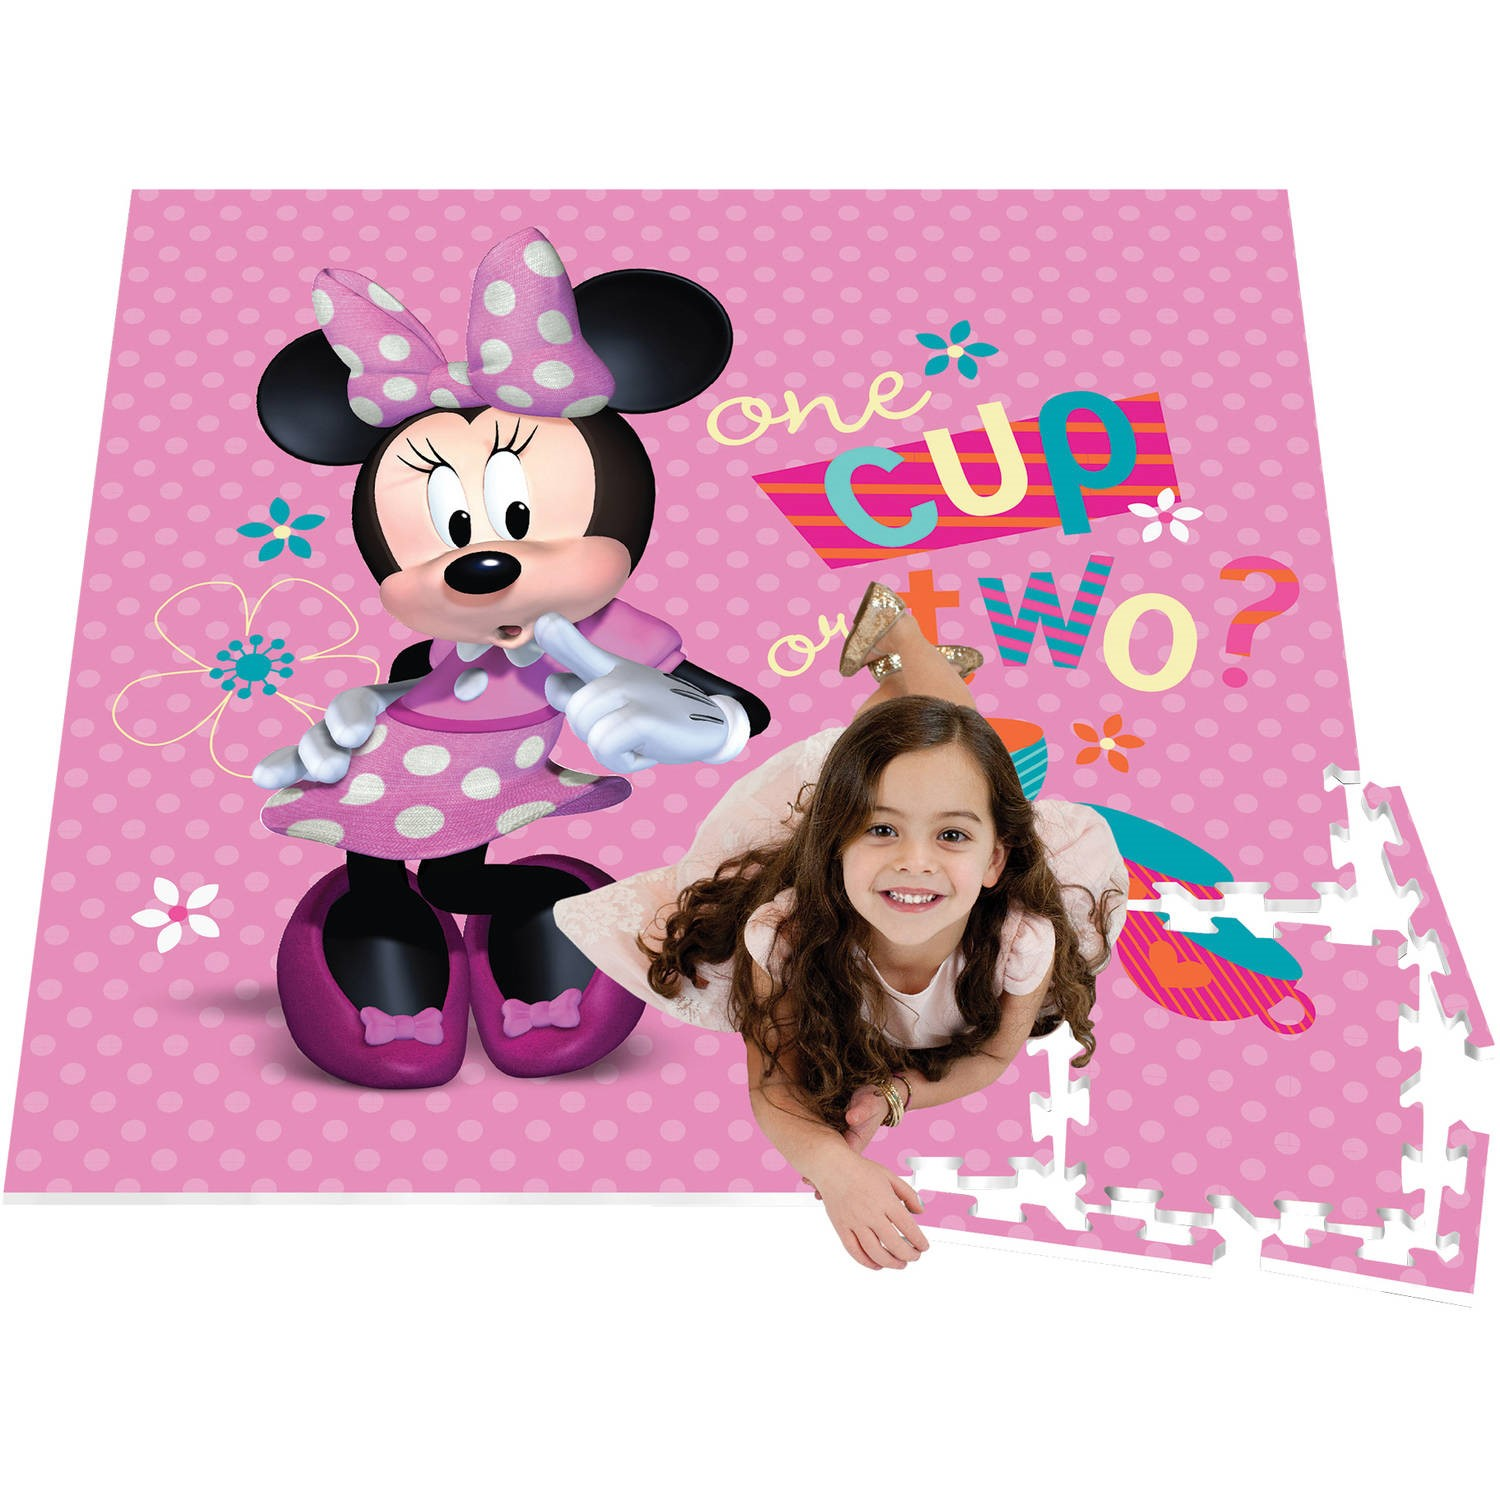 4' v 4' Activity Play Mat, Available in Multiple Patterns